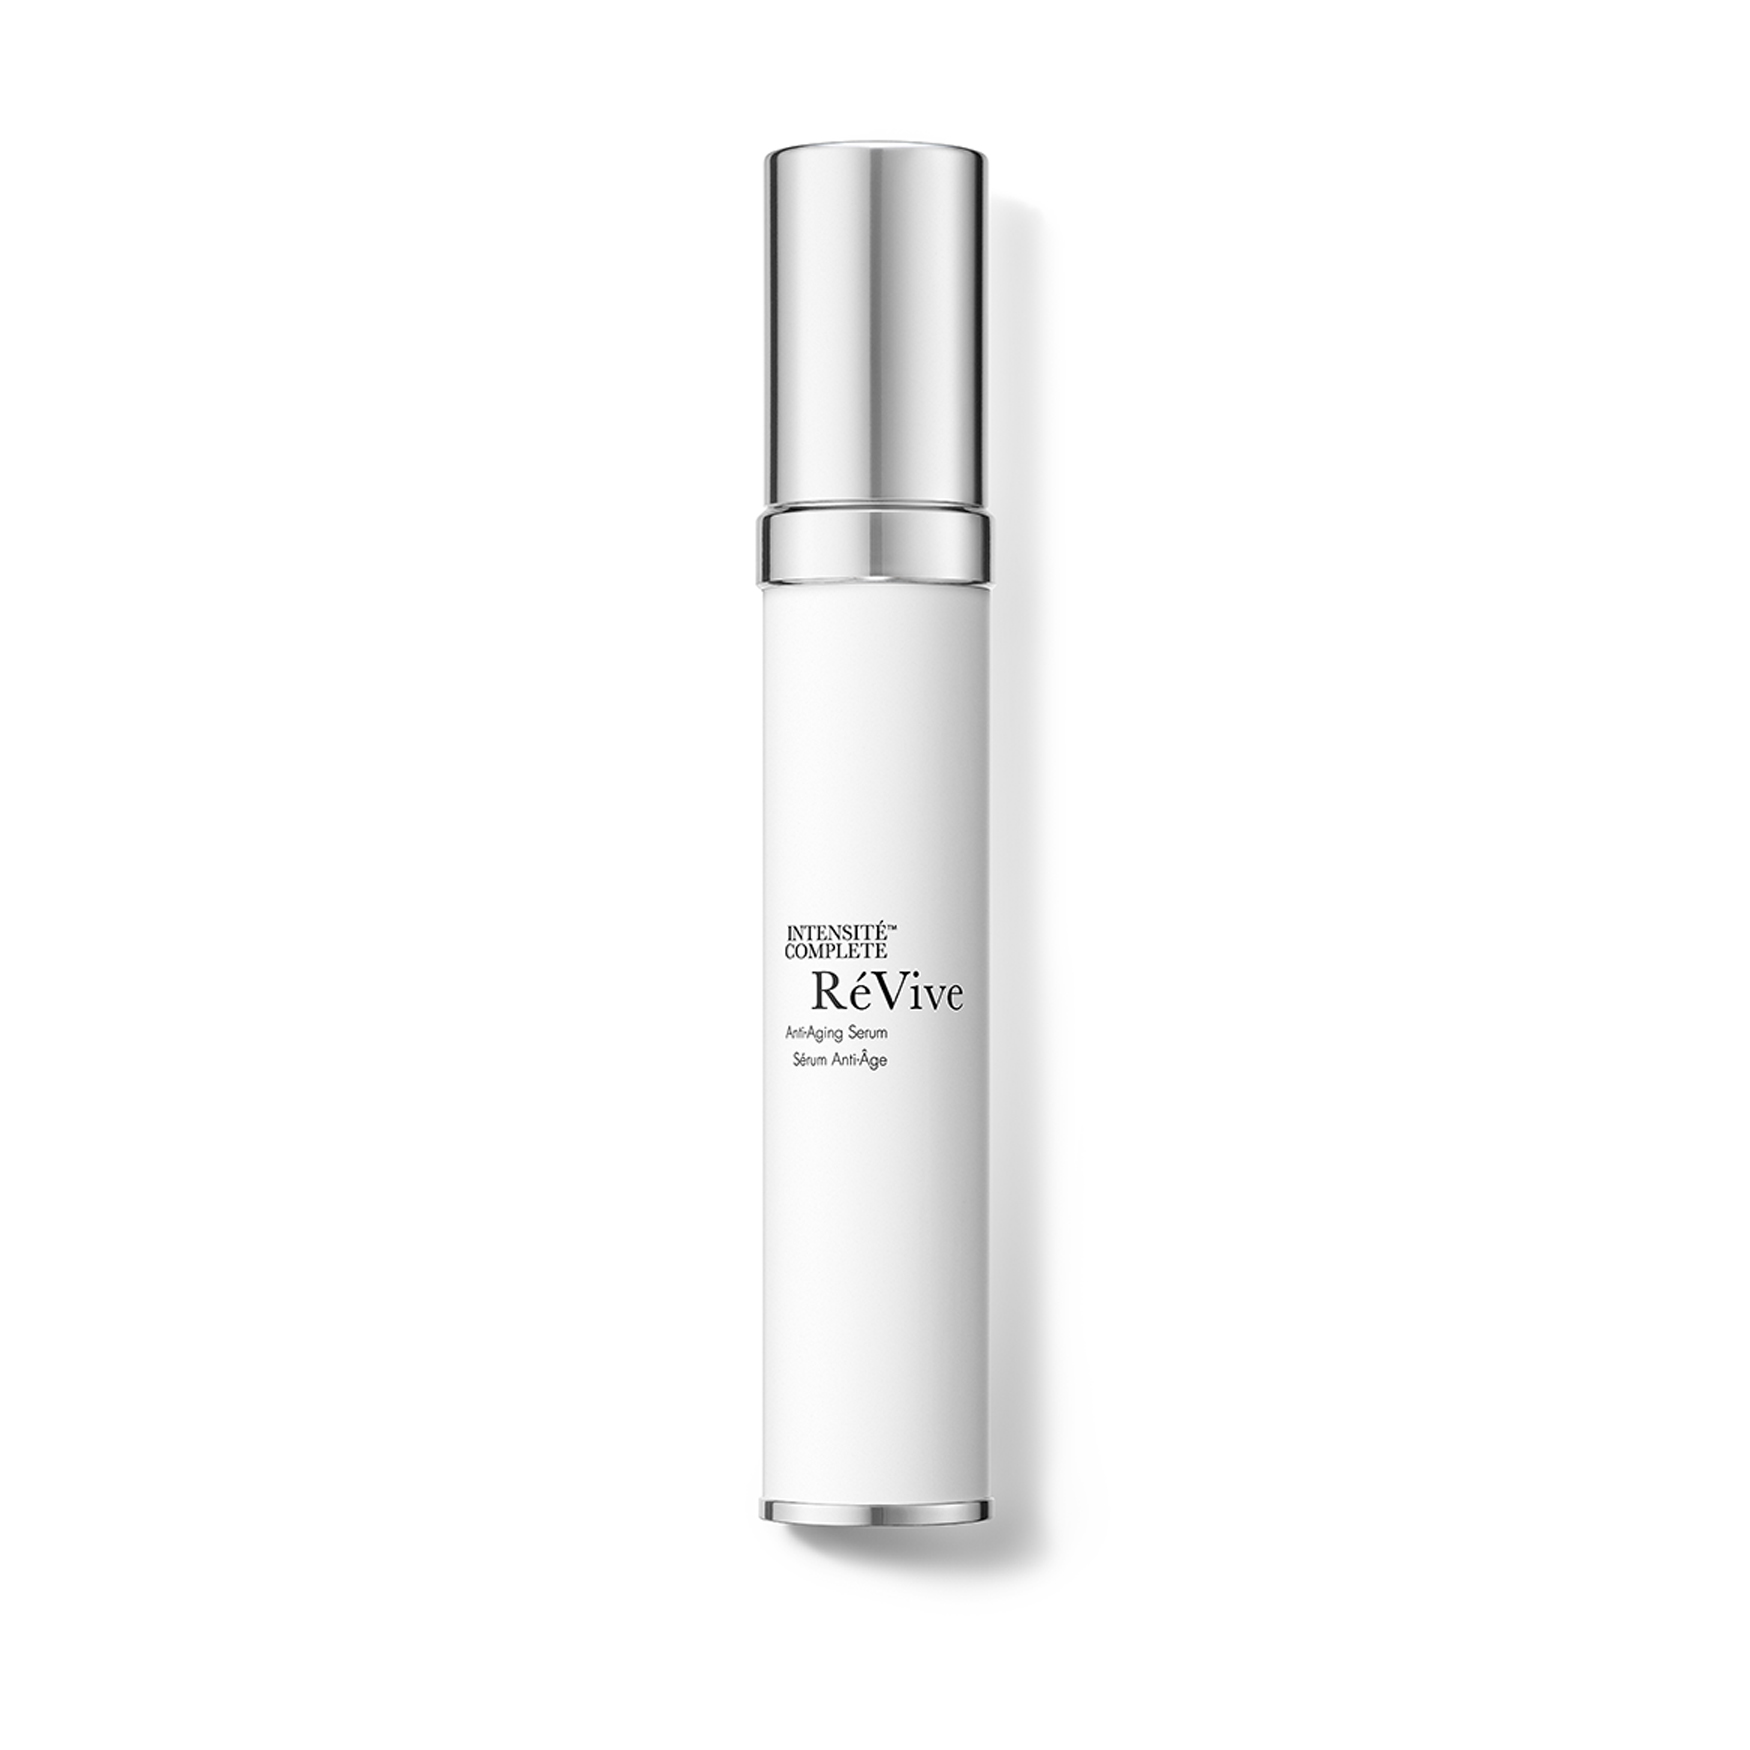 Révive Intensité Complete Anti-Aging Serum